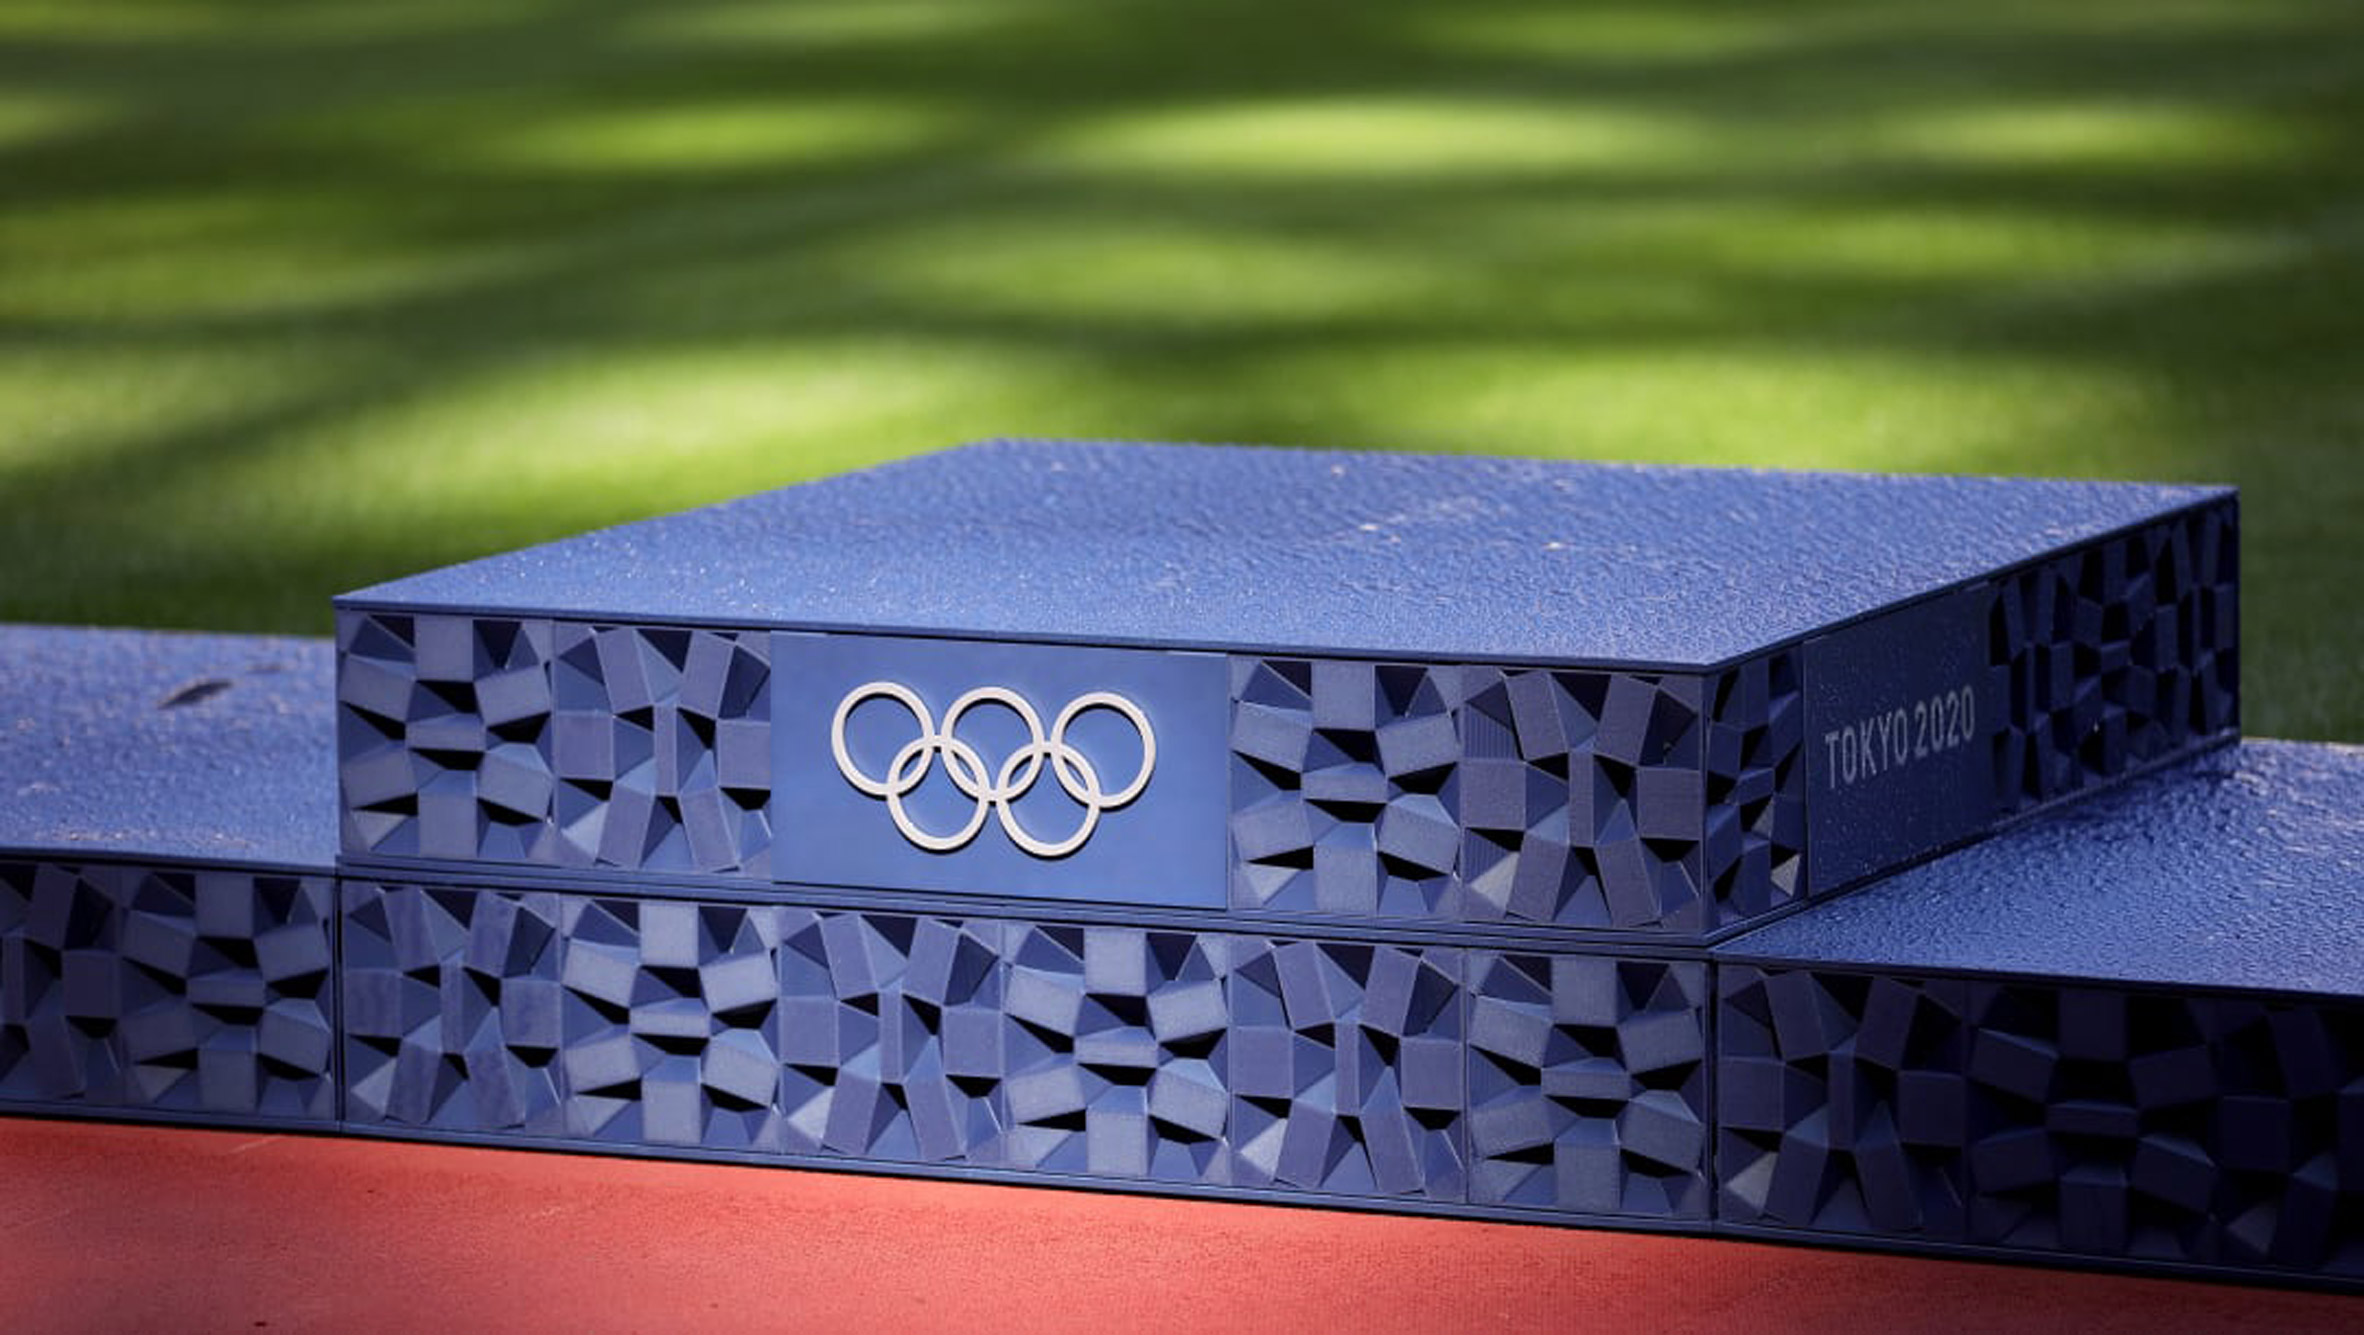 Close-up of Tokyo 2020 Olympic pedestals with rings